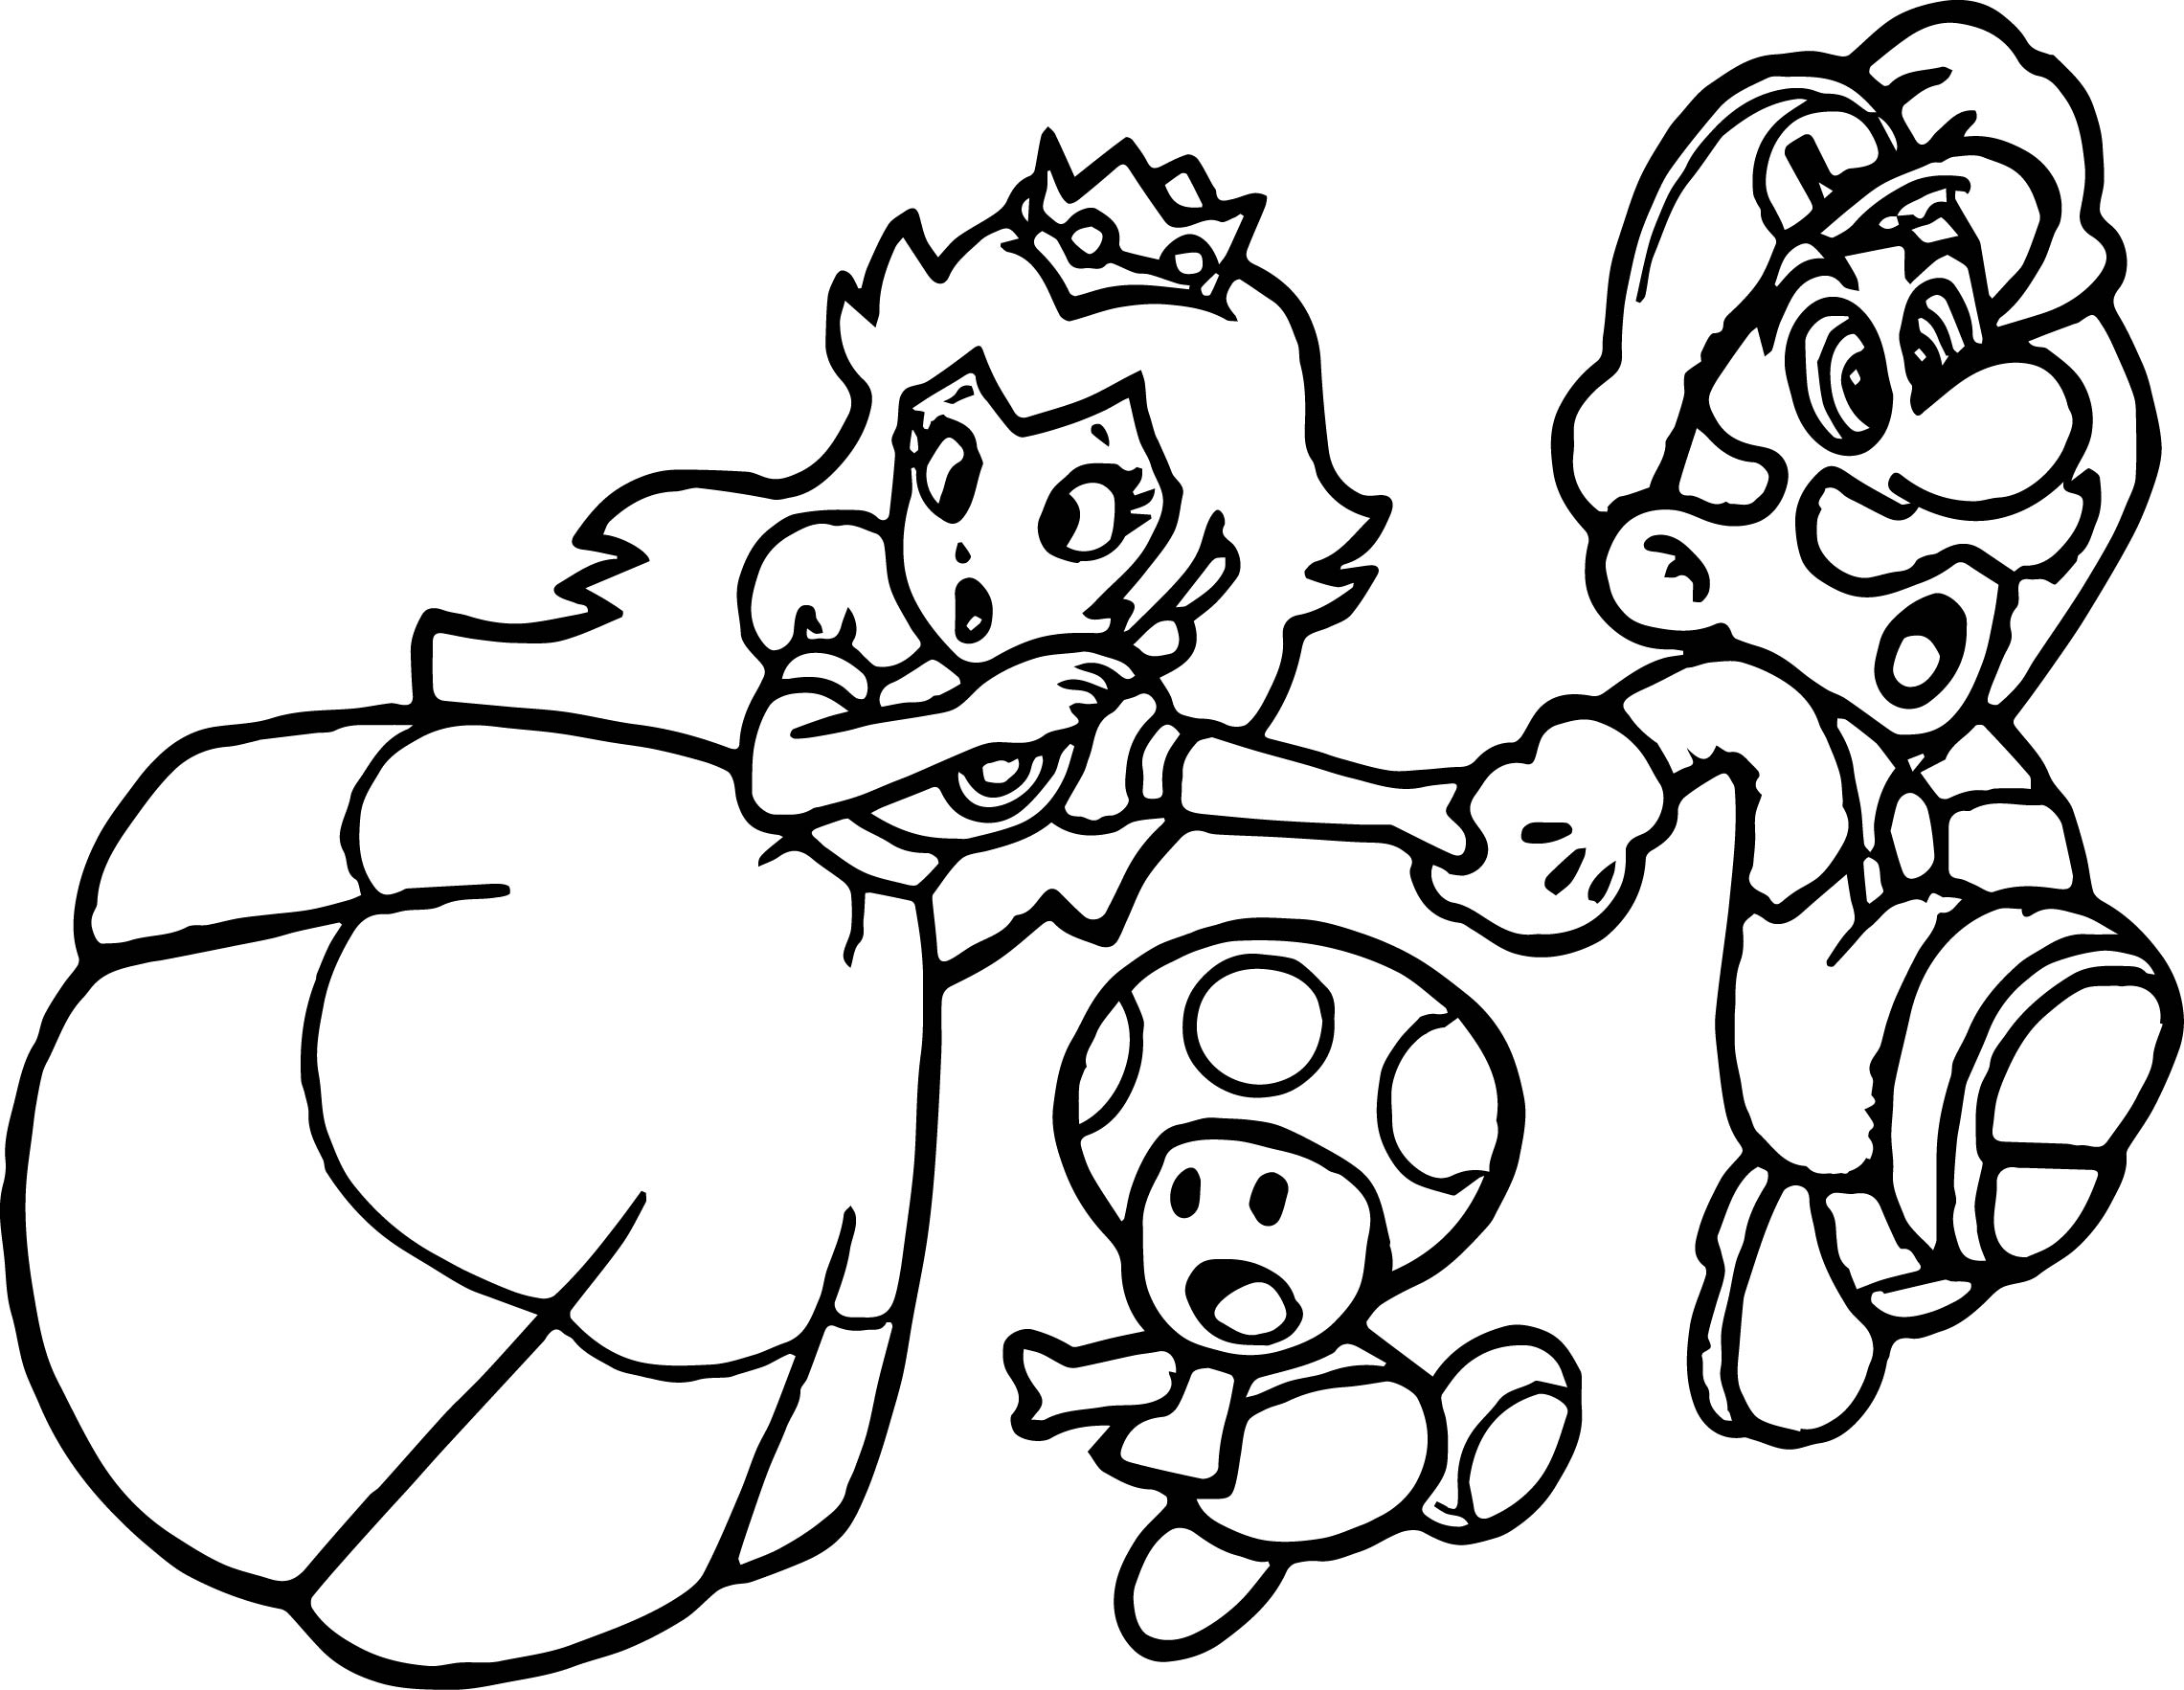 Mario Coloring Pages | Free download on ClipArtMag